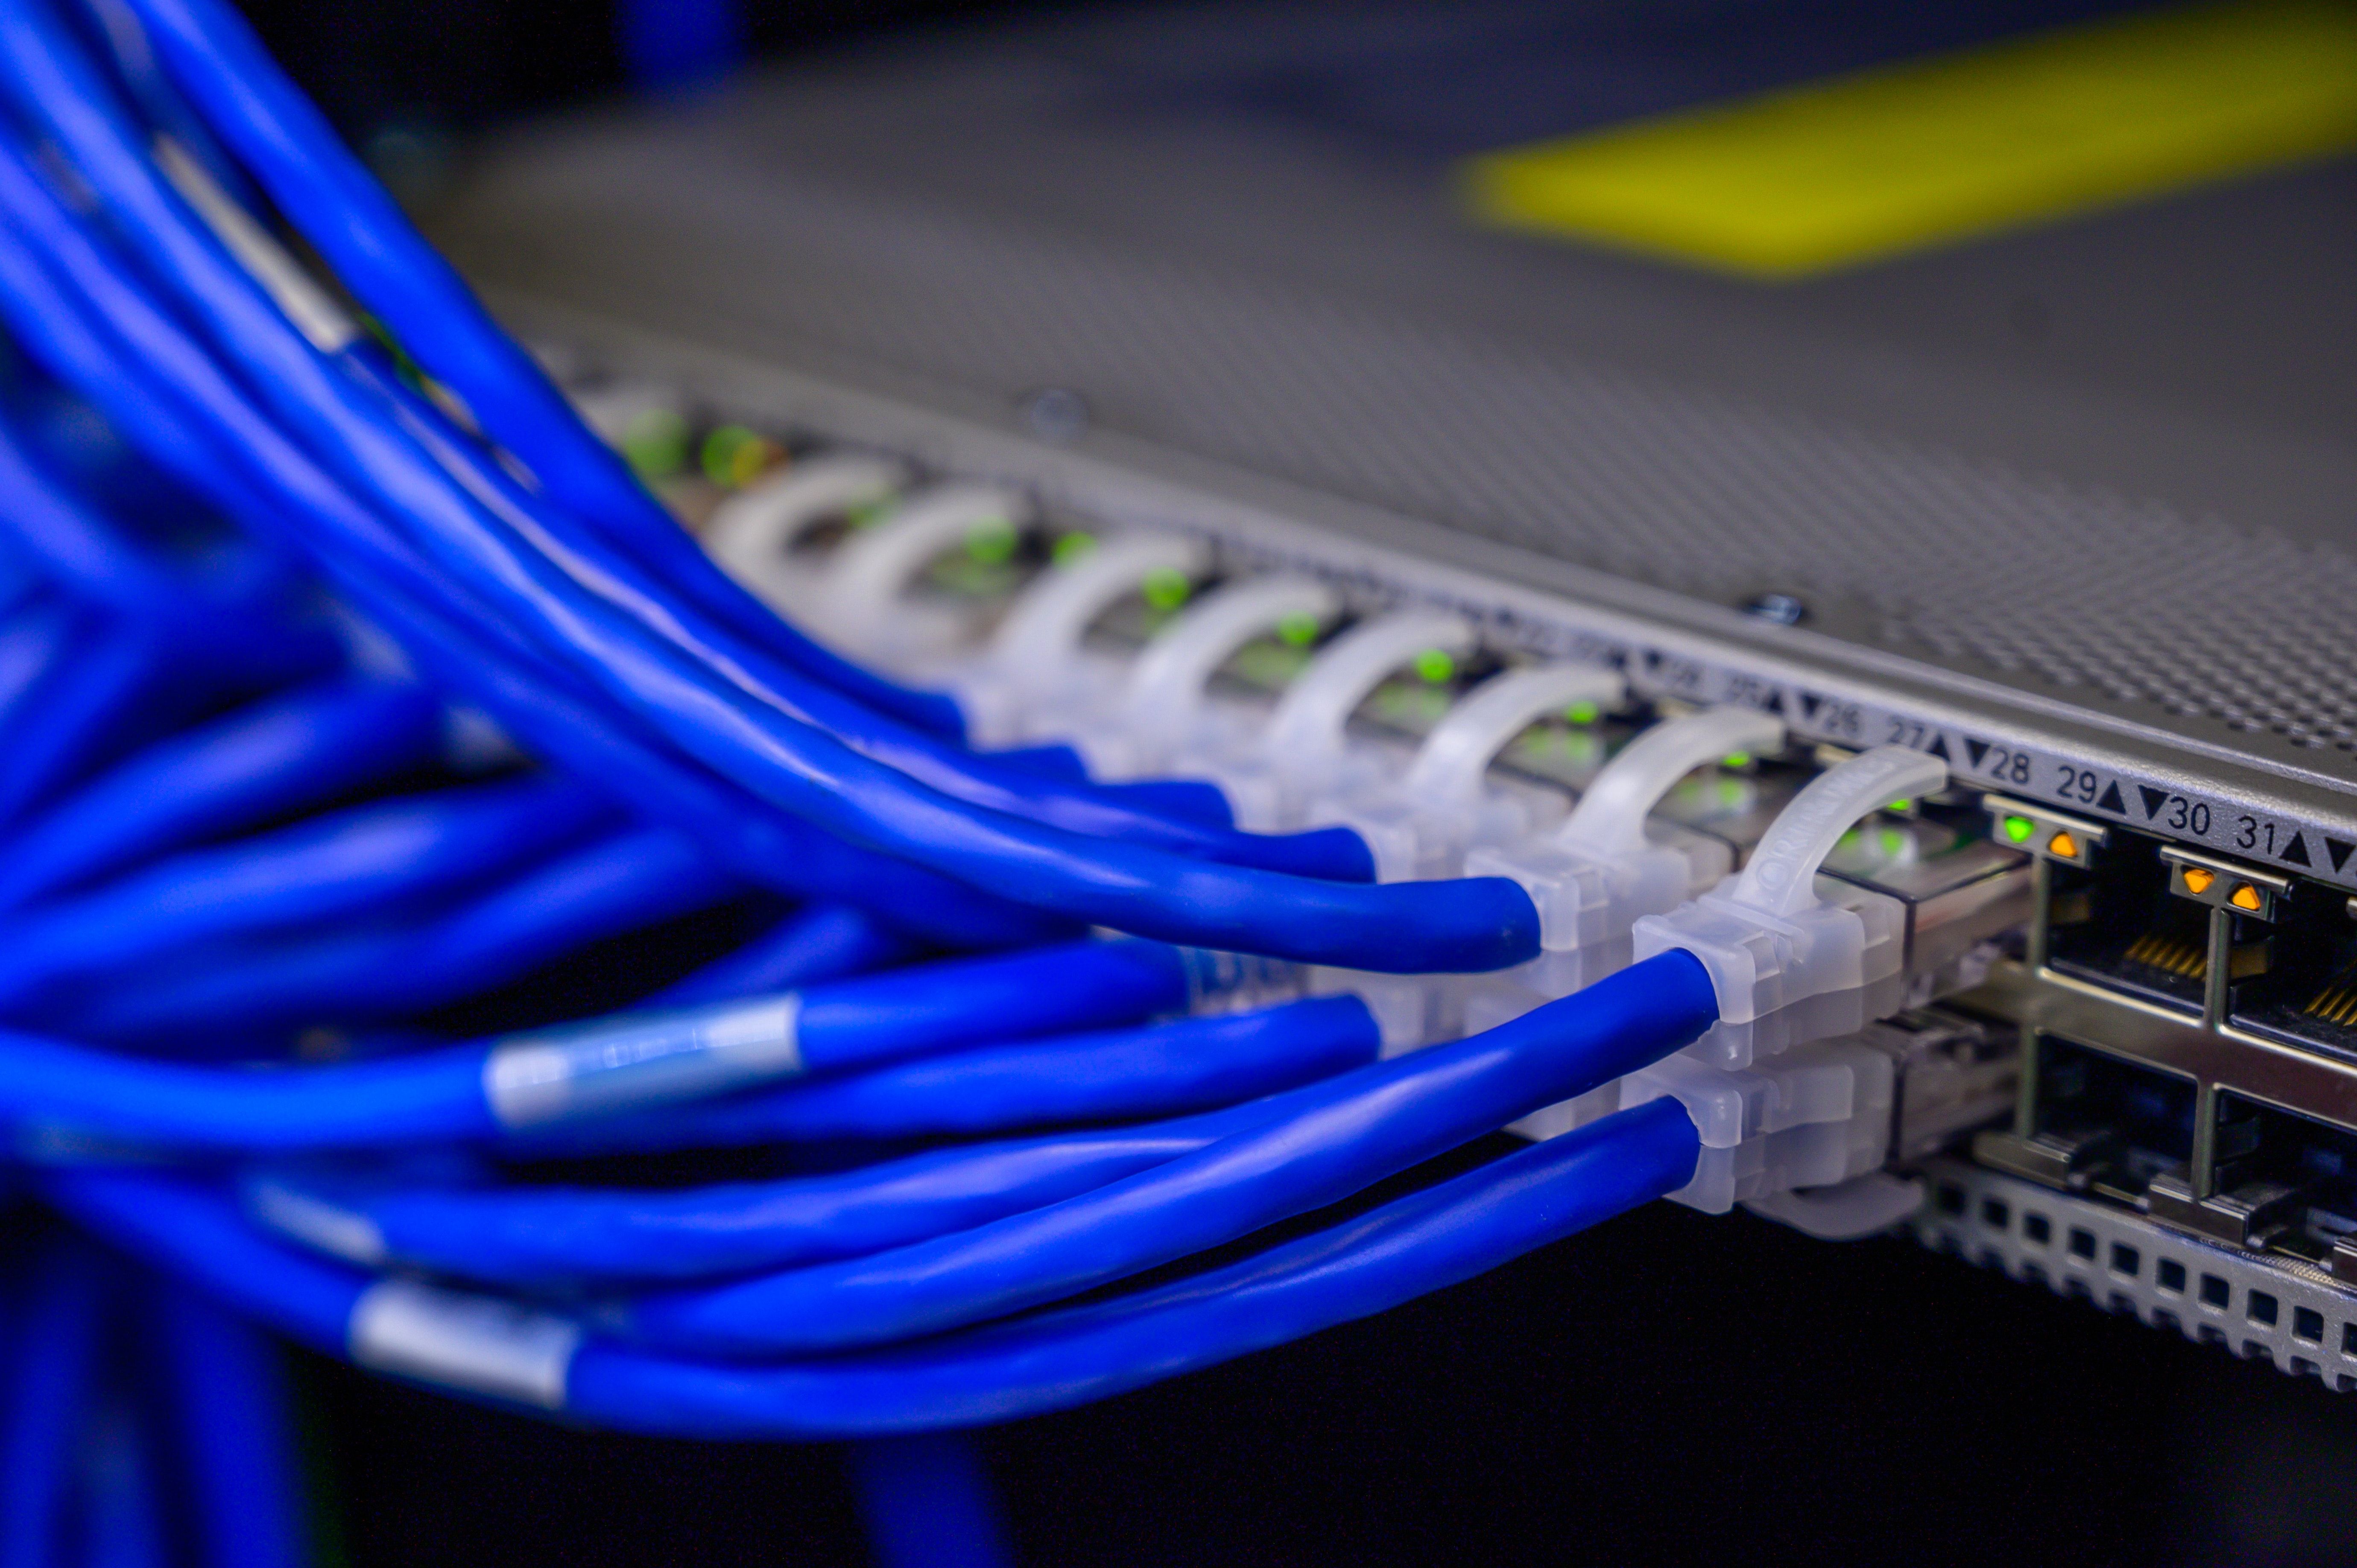 structured cabling installation, cat5 and cat6 cables in a server